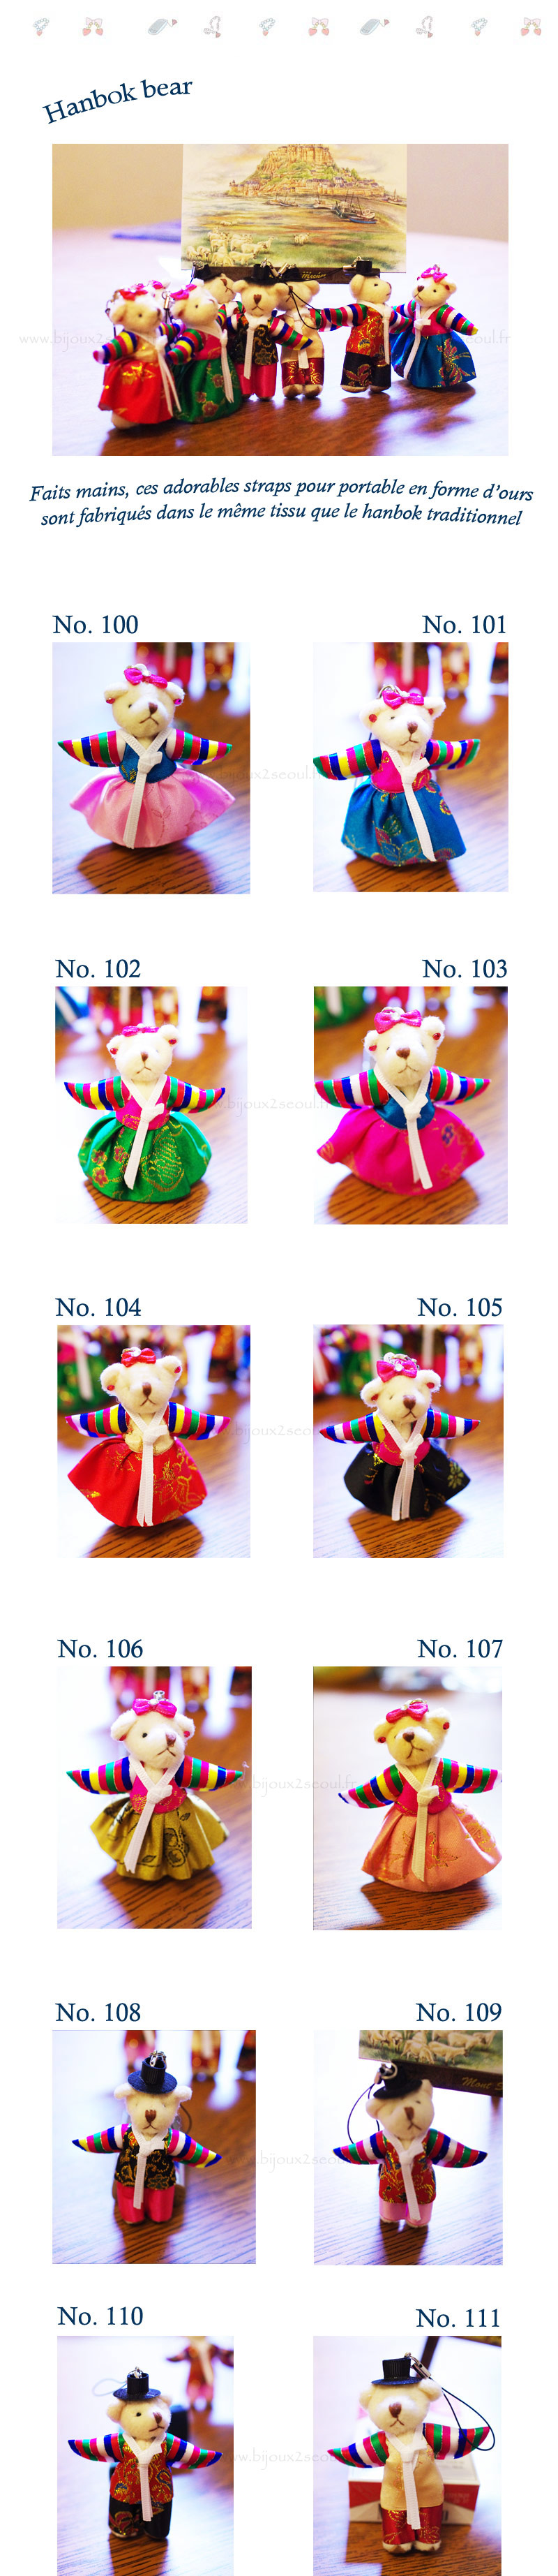 straps_ours_hanbok